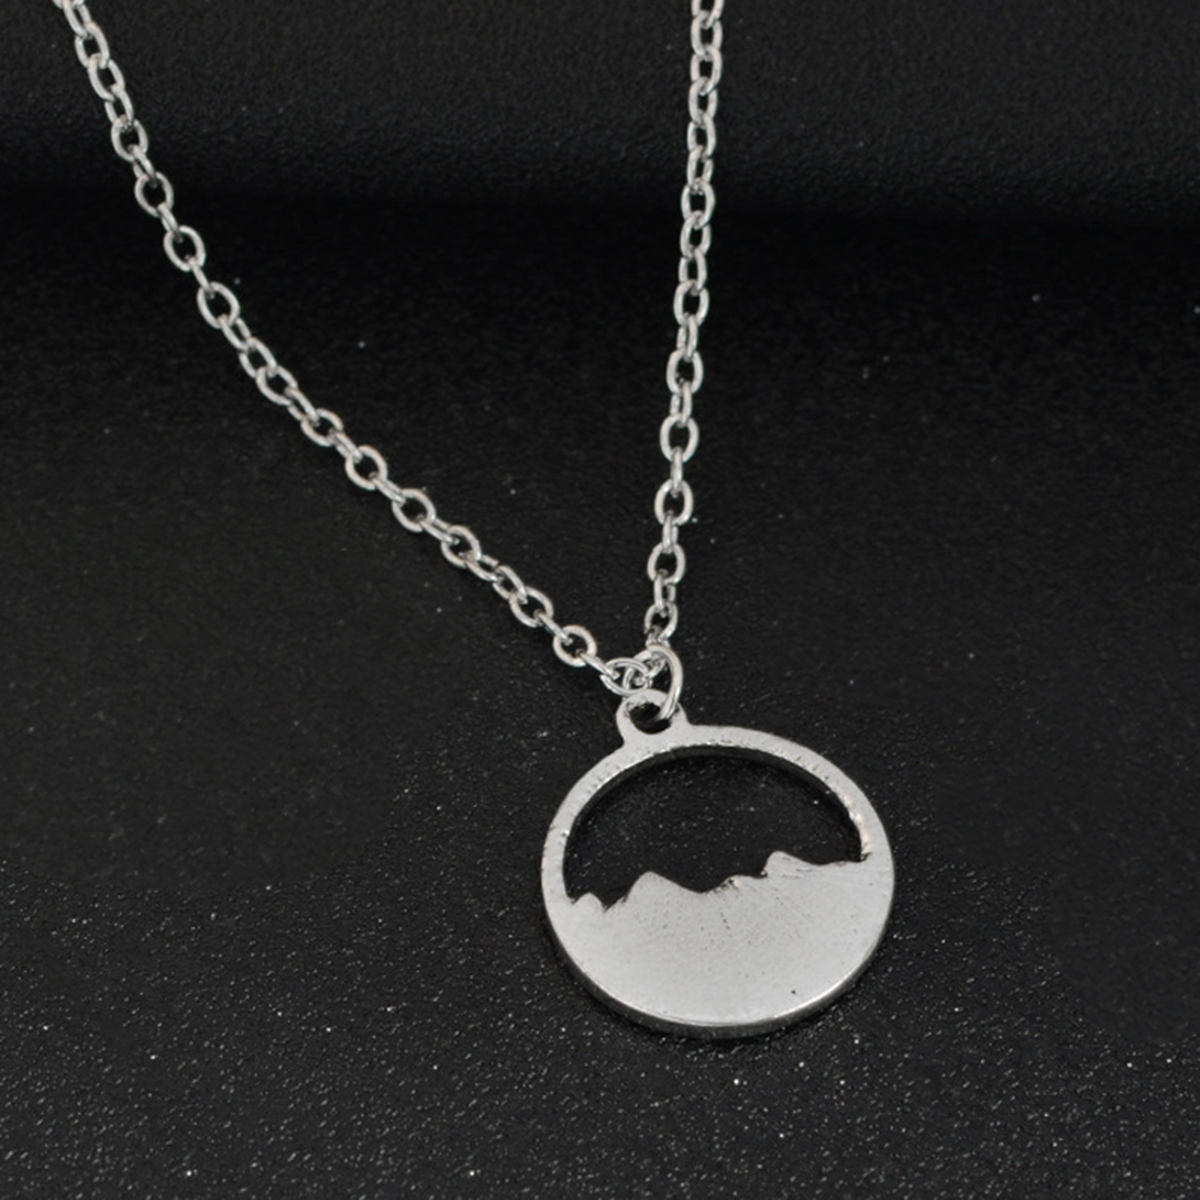 New Long Chain Necklace Antique Simple Silver Plated Mountain ...